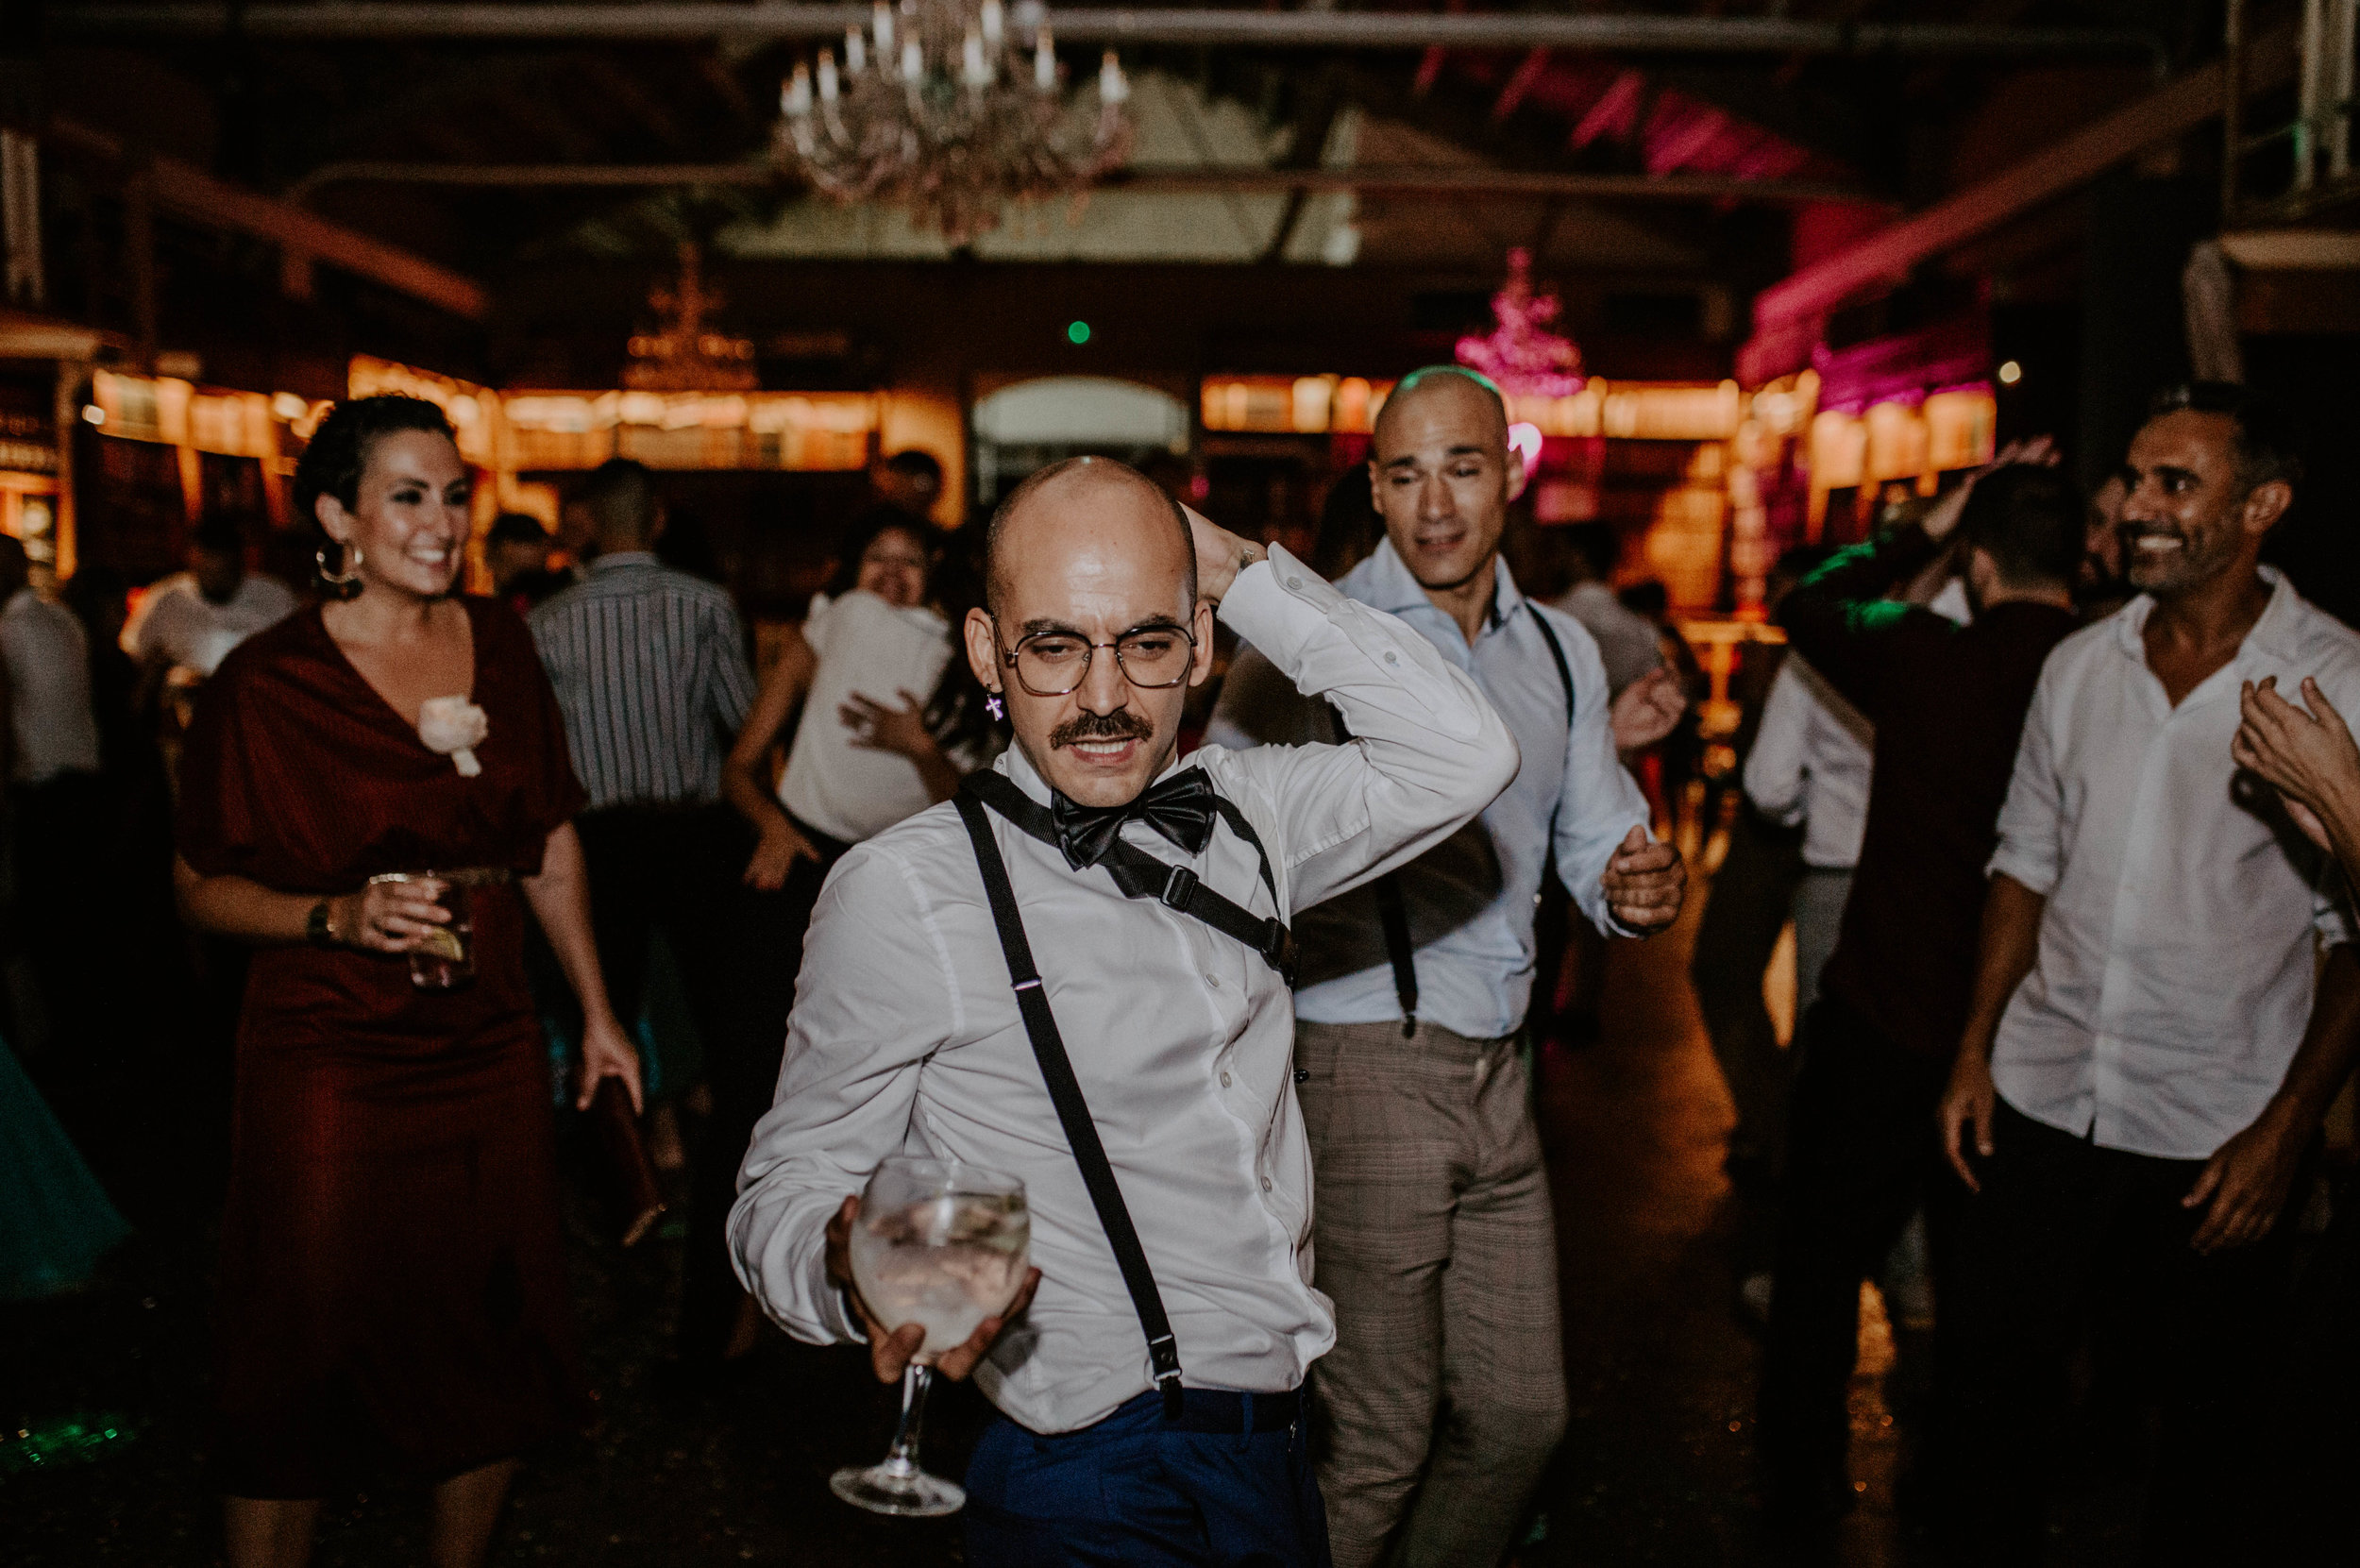 thenortherngirlphotography_bodasindustriales_bodasdiferentes_weddingphotographer_spanishphotographer_spanisgweddingphotographer_happyendings_mercantic_elsiglomercantic_antichrist_love_neon_weddingtattoo_CYNTHIAMANOLO-1041.jpg